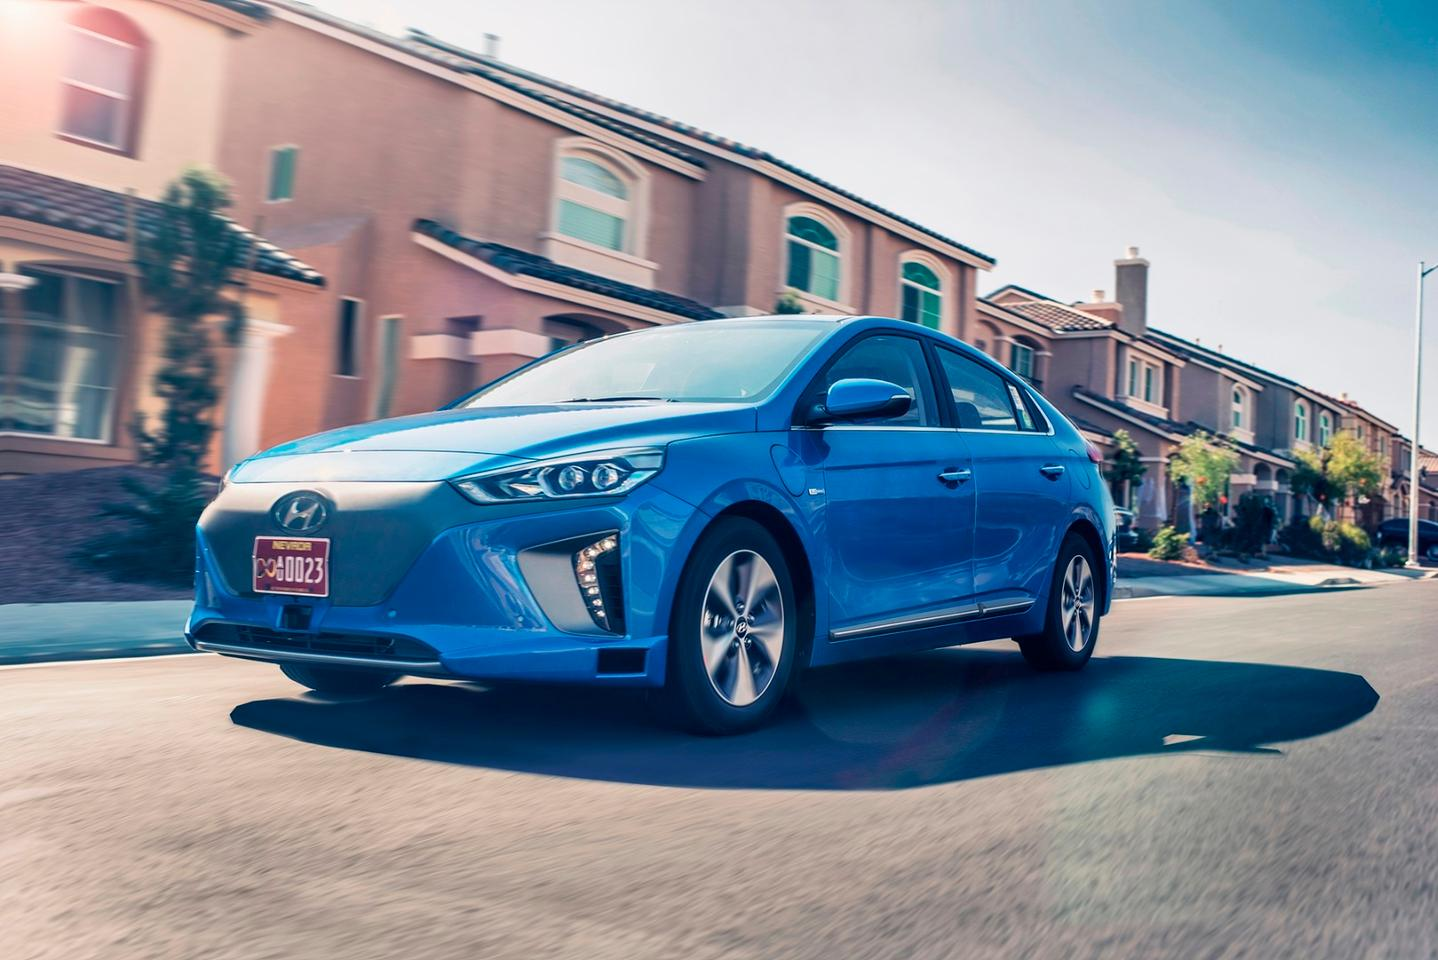 Three autonomous IONIQs are currently being tested at the Hyundai Motor Research and Development Center in Namyang, South Korea